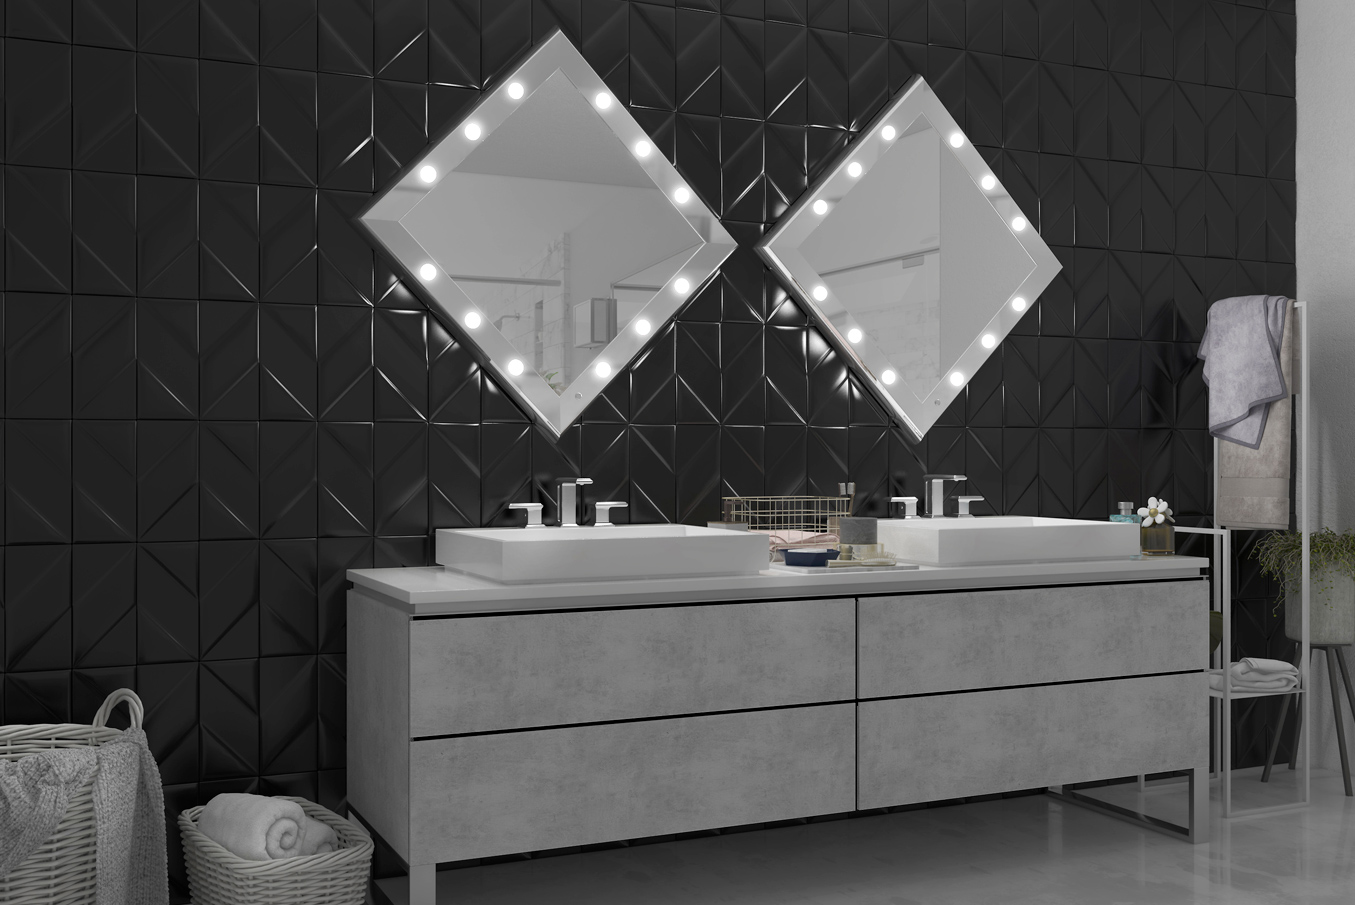 square and framed illuminated wall mirror for double sink bathroom, minimal modern interior design